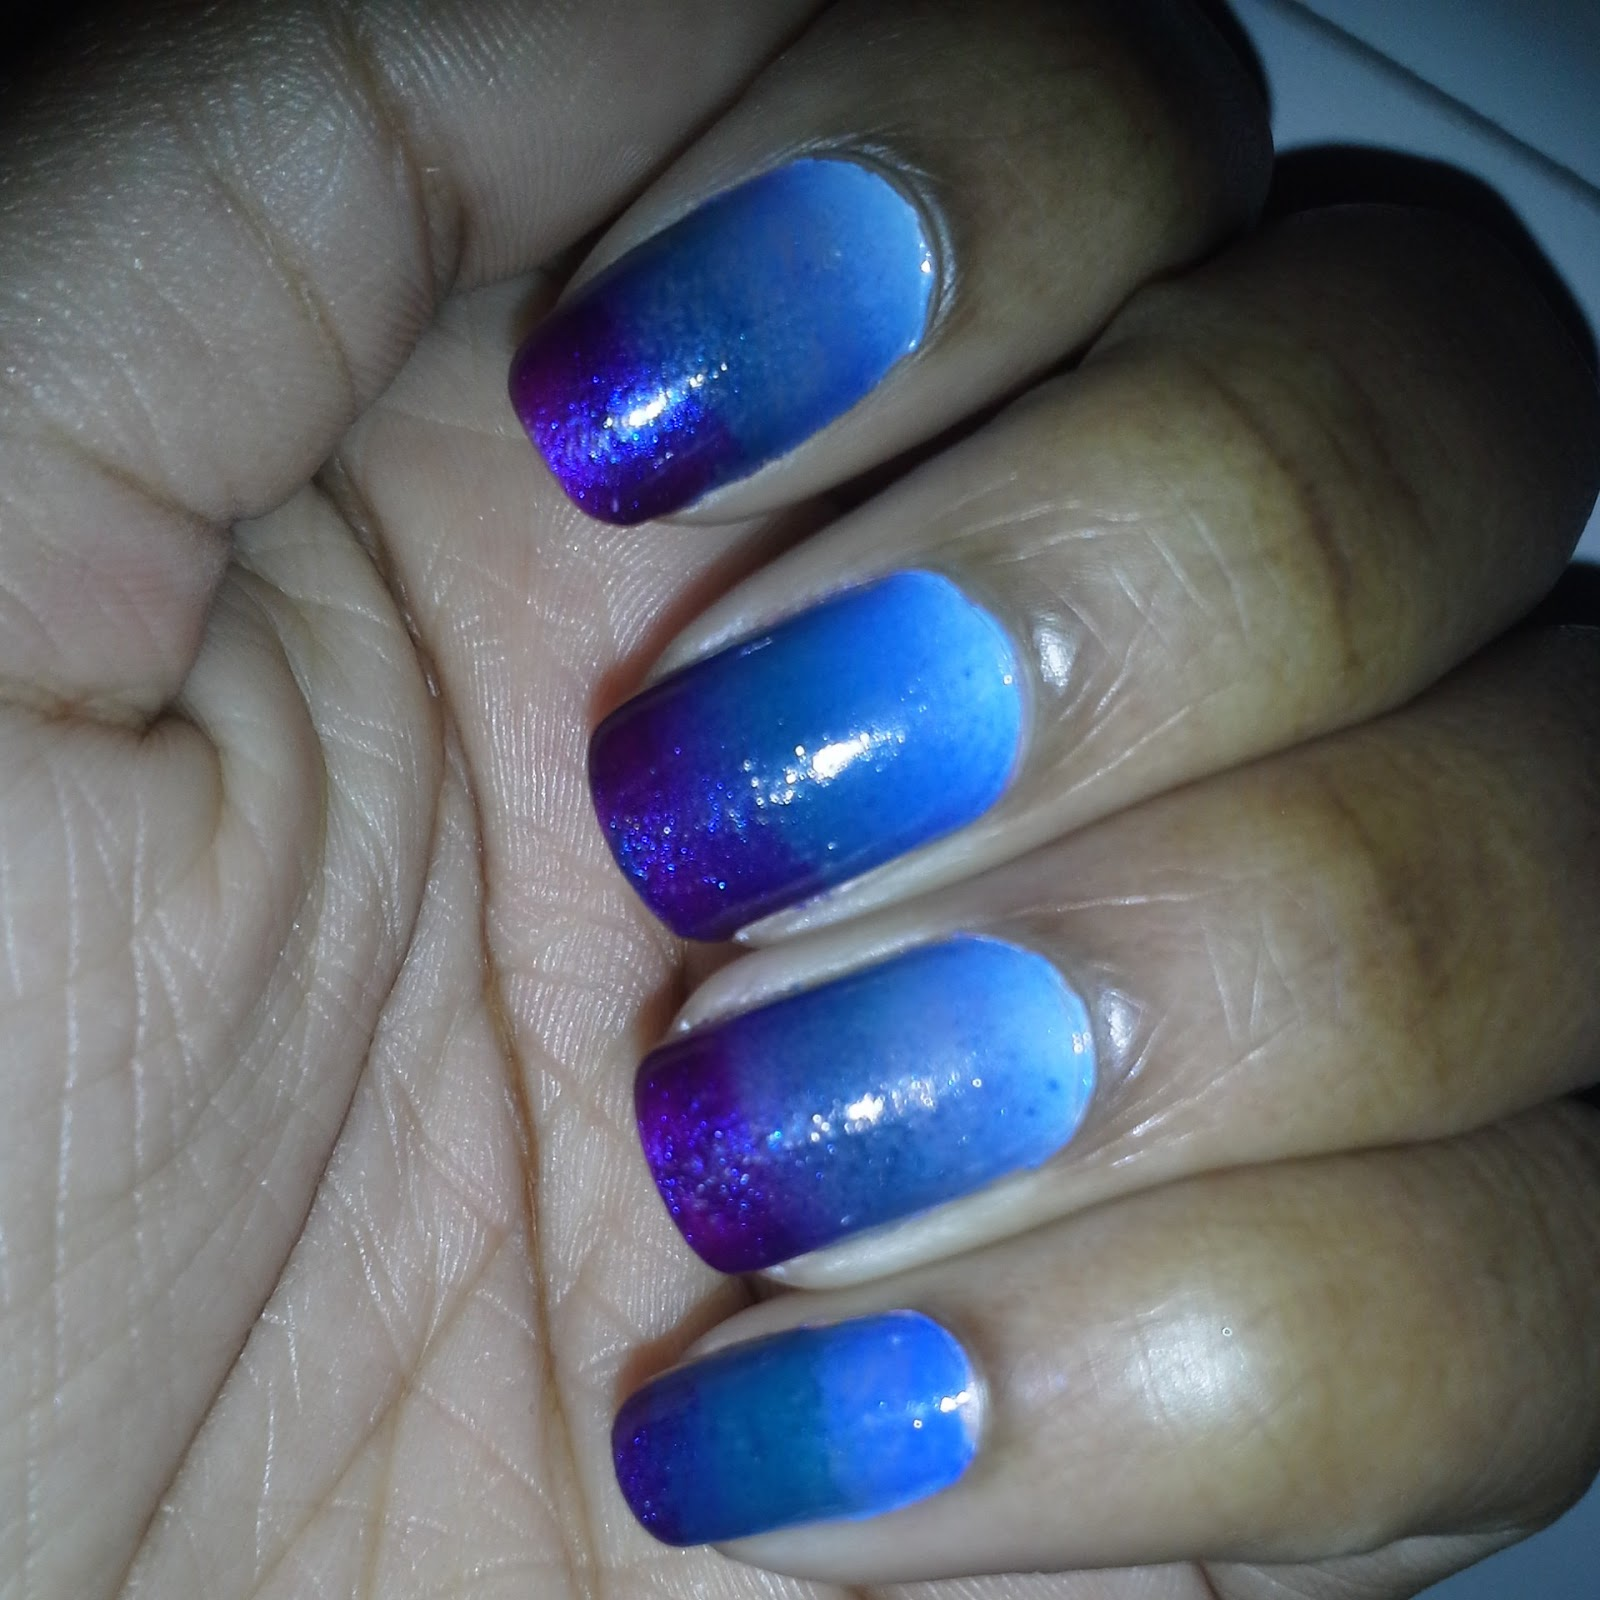 colorful dripping nails this is my most recent manicure